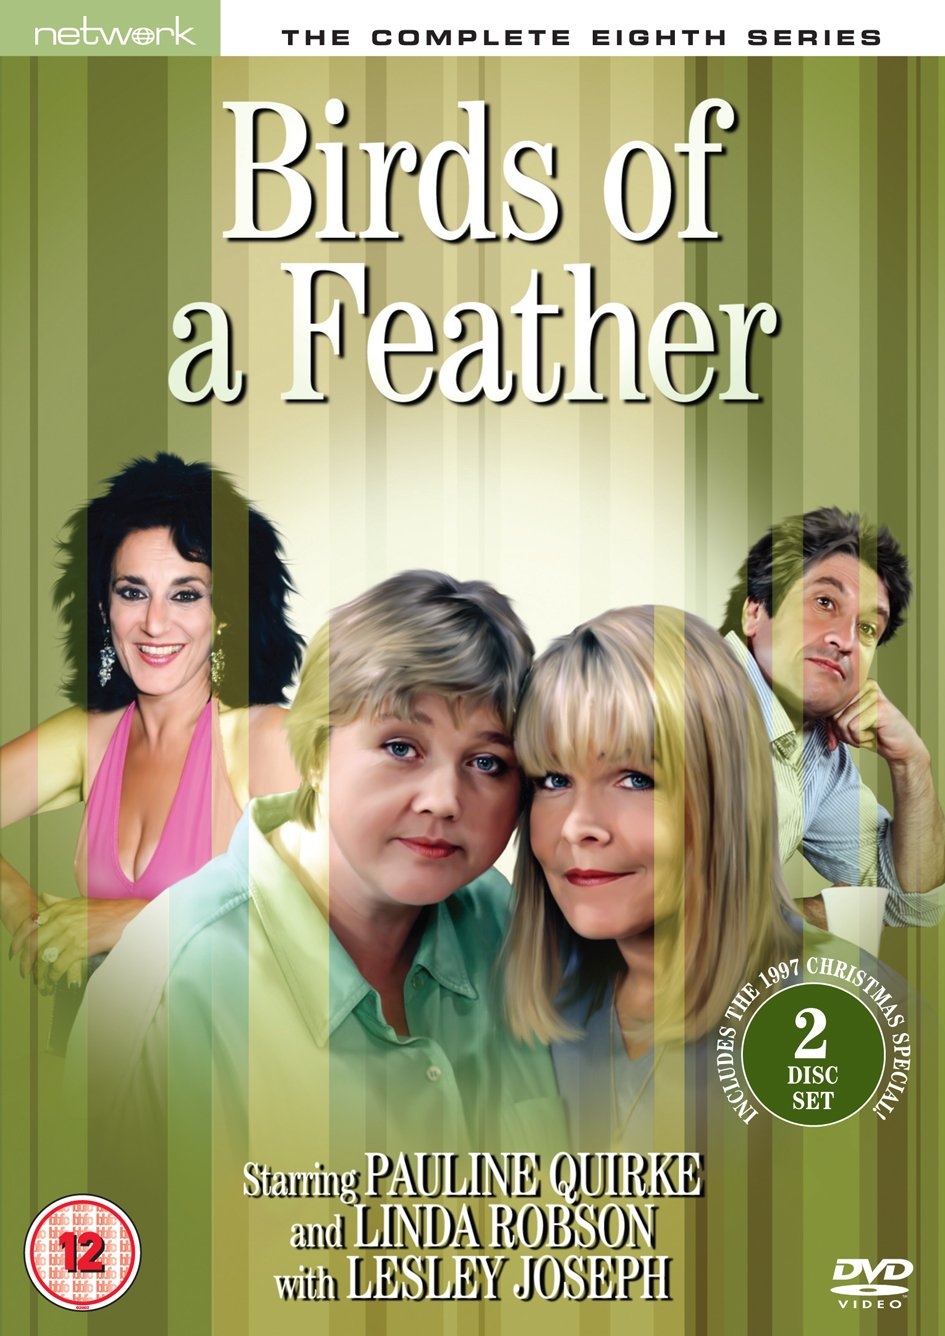 Birds of a Feather - The Series Complete 8 BBC DVD Fixed price for sale Shipping included